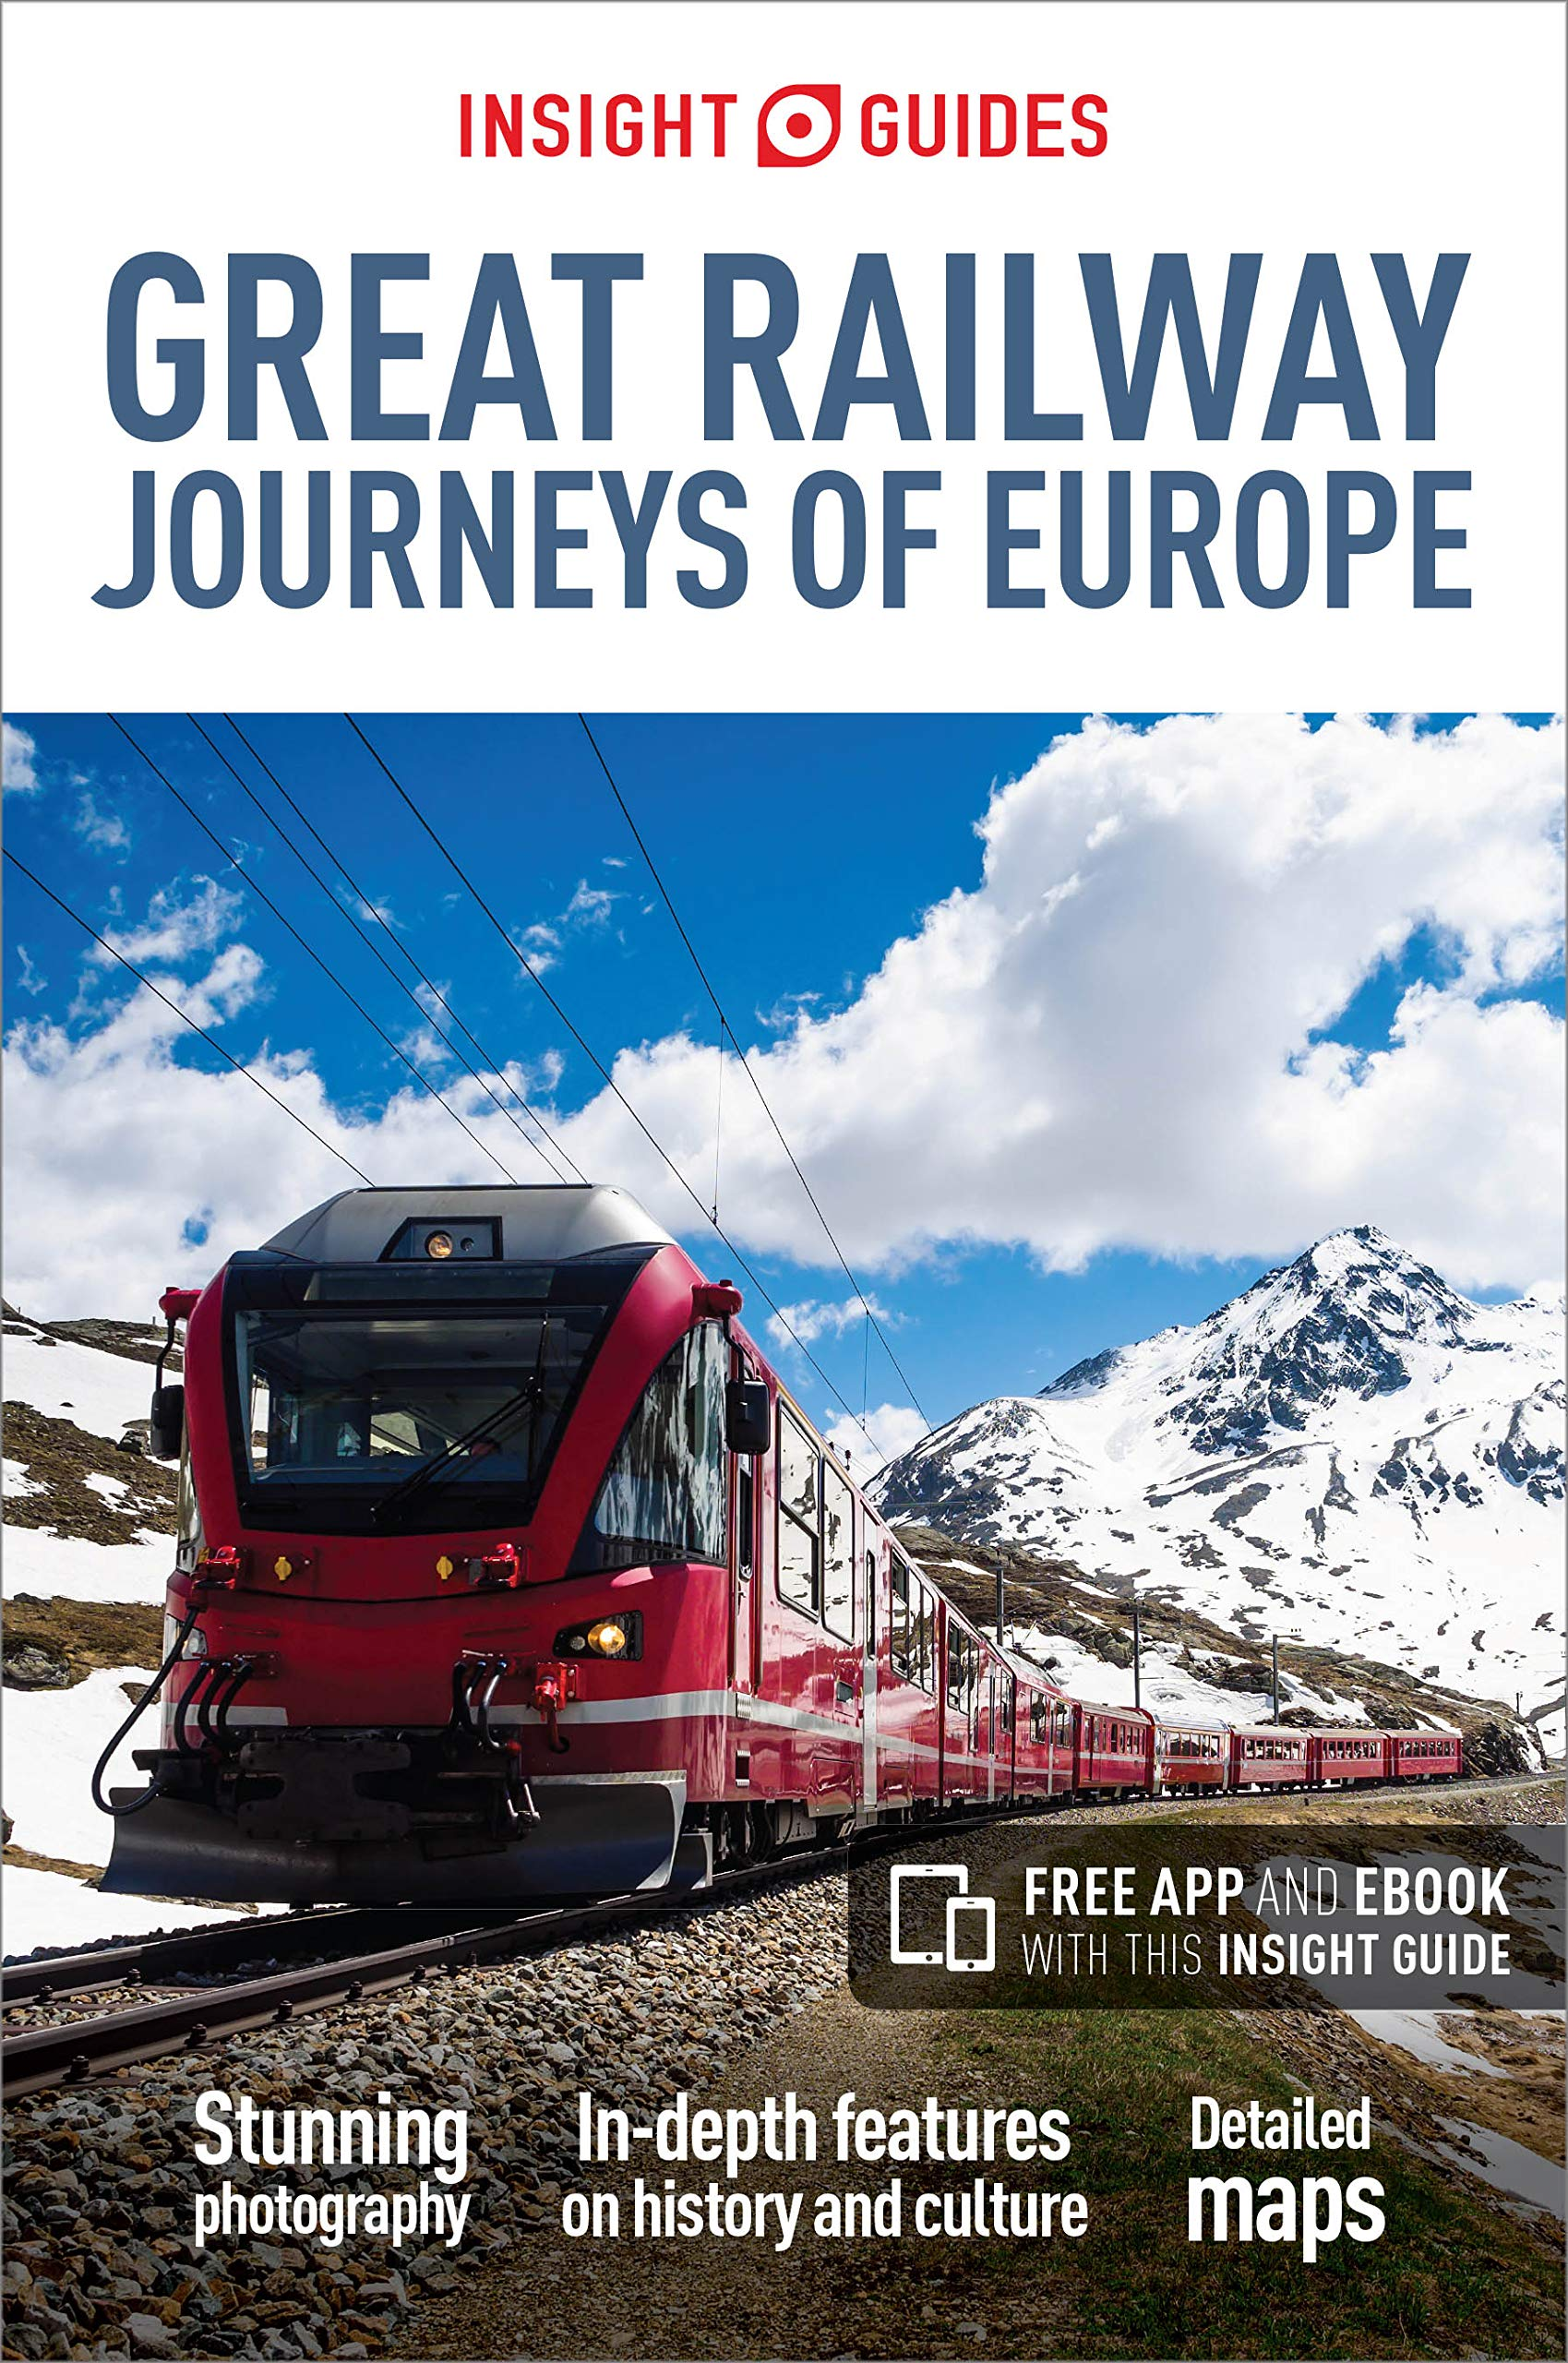 Reisgids Great Railway journeys of Europe   Insight Guides